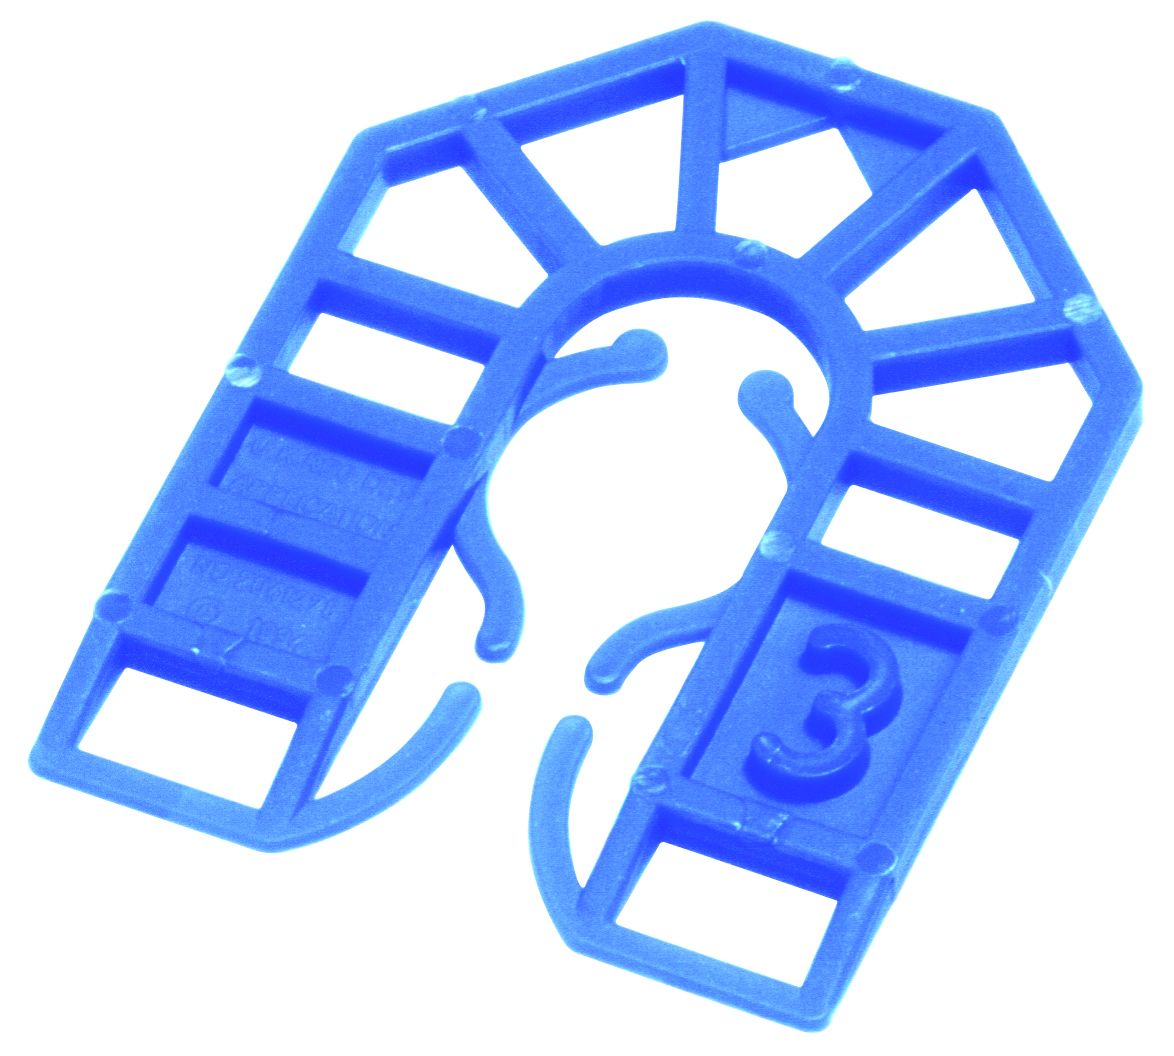 55 x 43 x 3mm Plastic Packing U Shim Blue